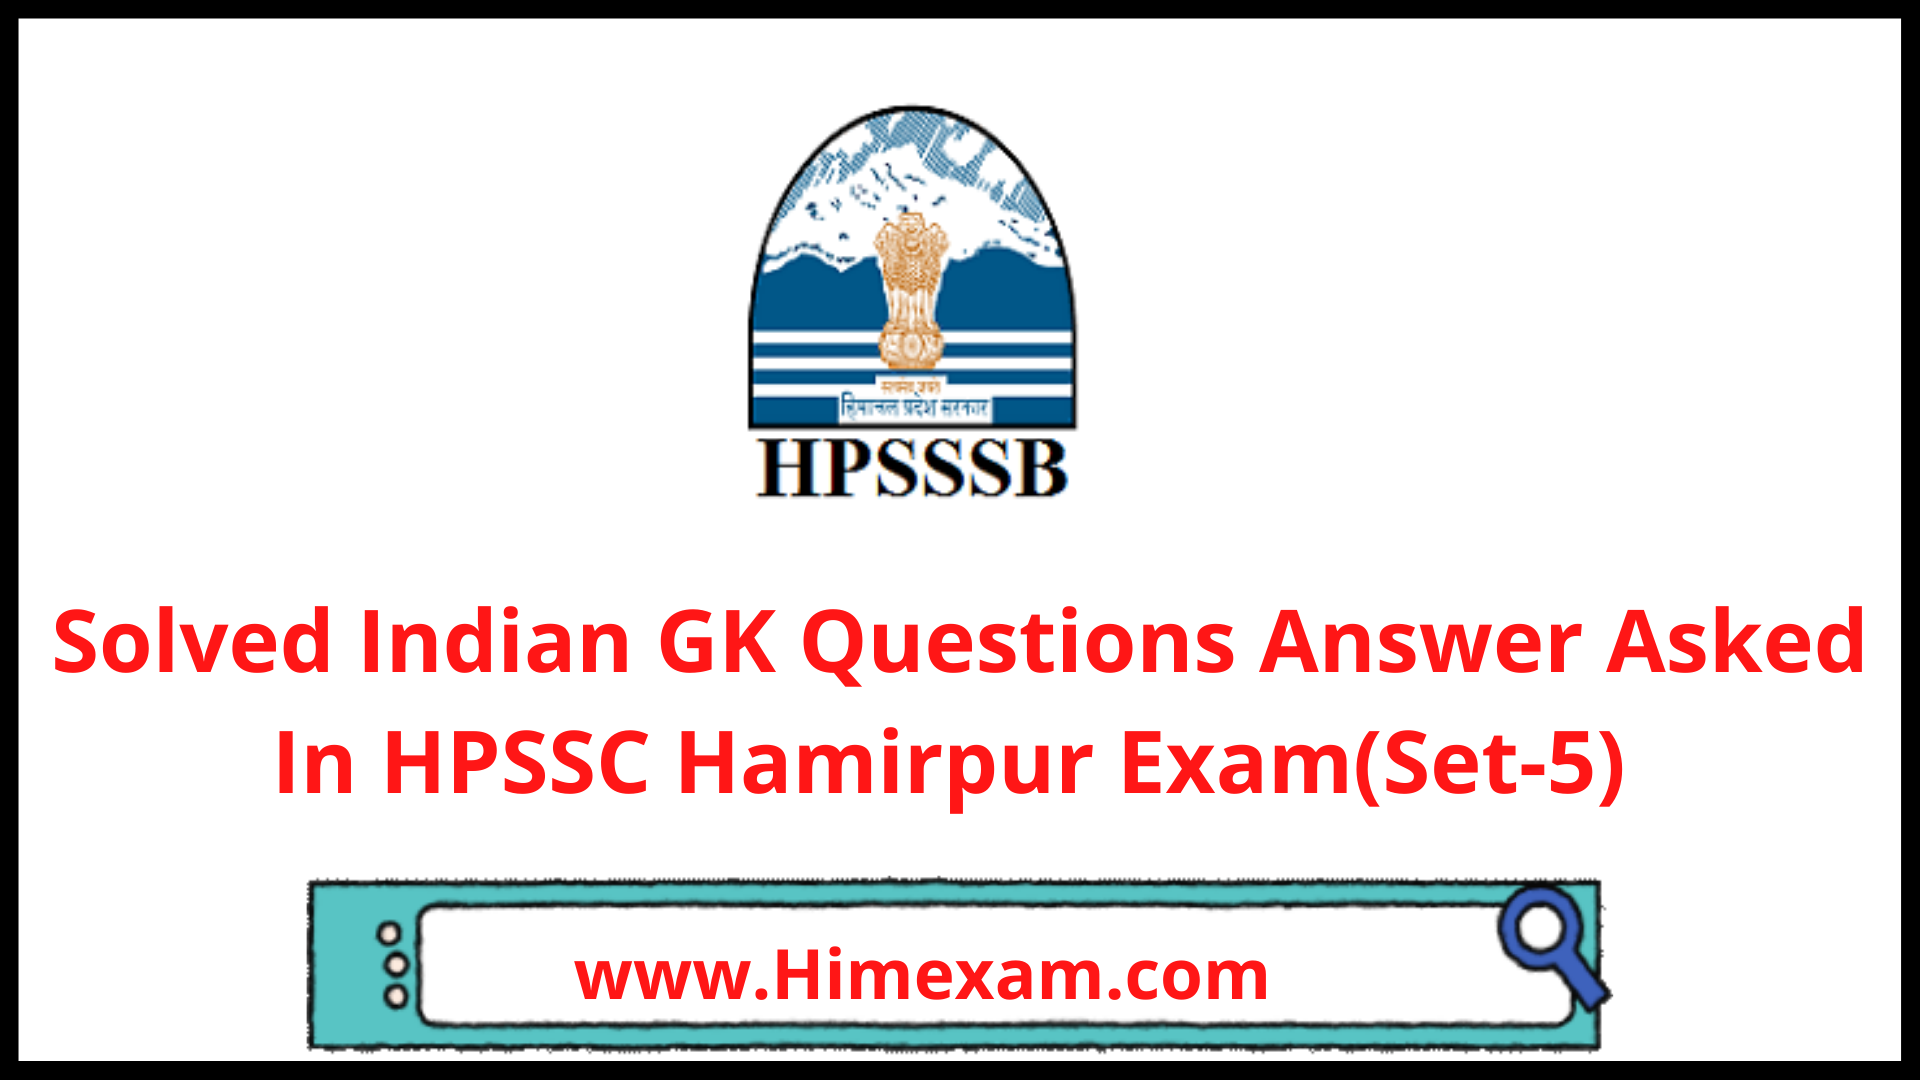 Solved Indian GK Questions Answer Asked In HPSSC Hamirpur Exam(Set-5)